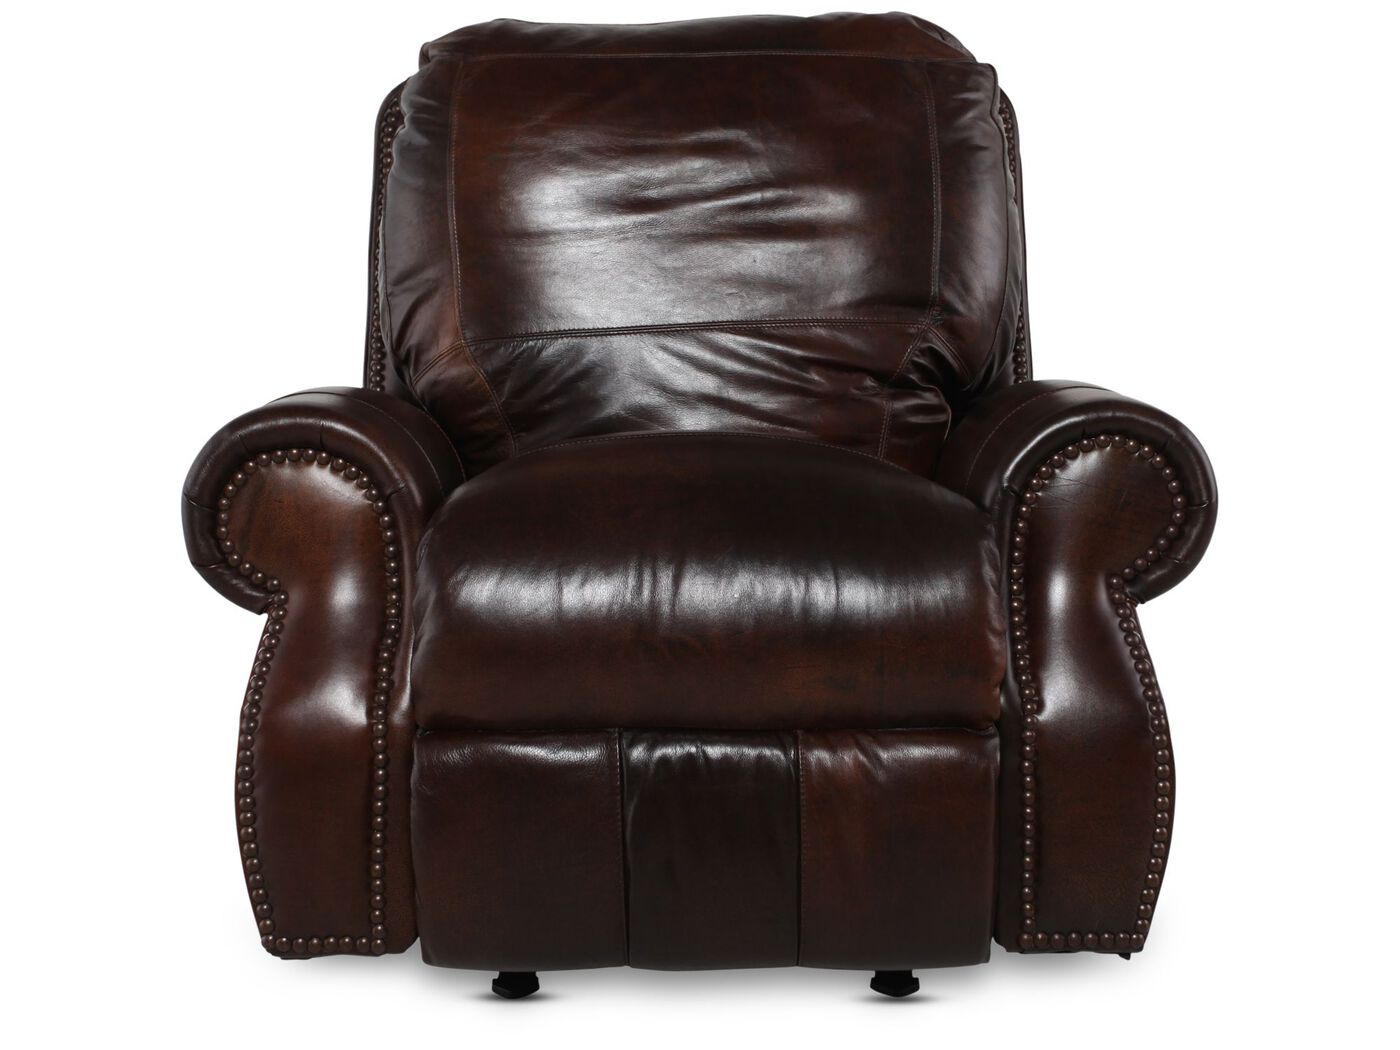 Living Room Furniture Usa usa leather cowboy rocker recliner | mathis brothers furniture